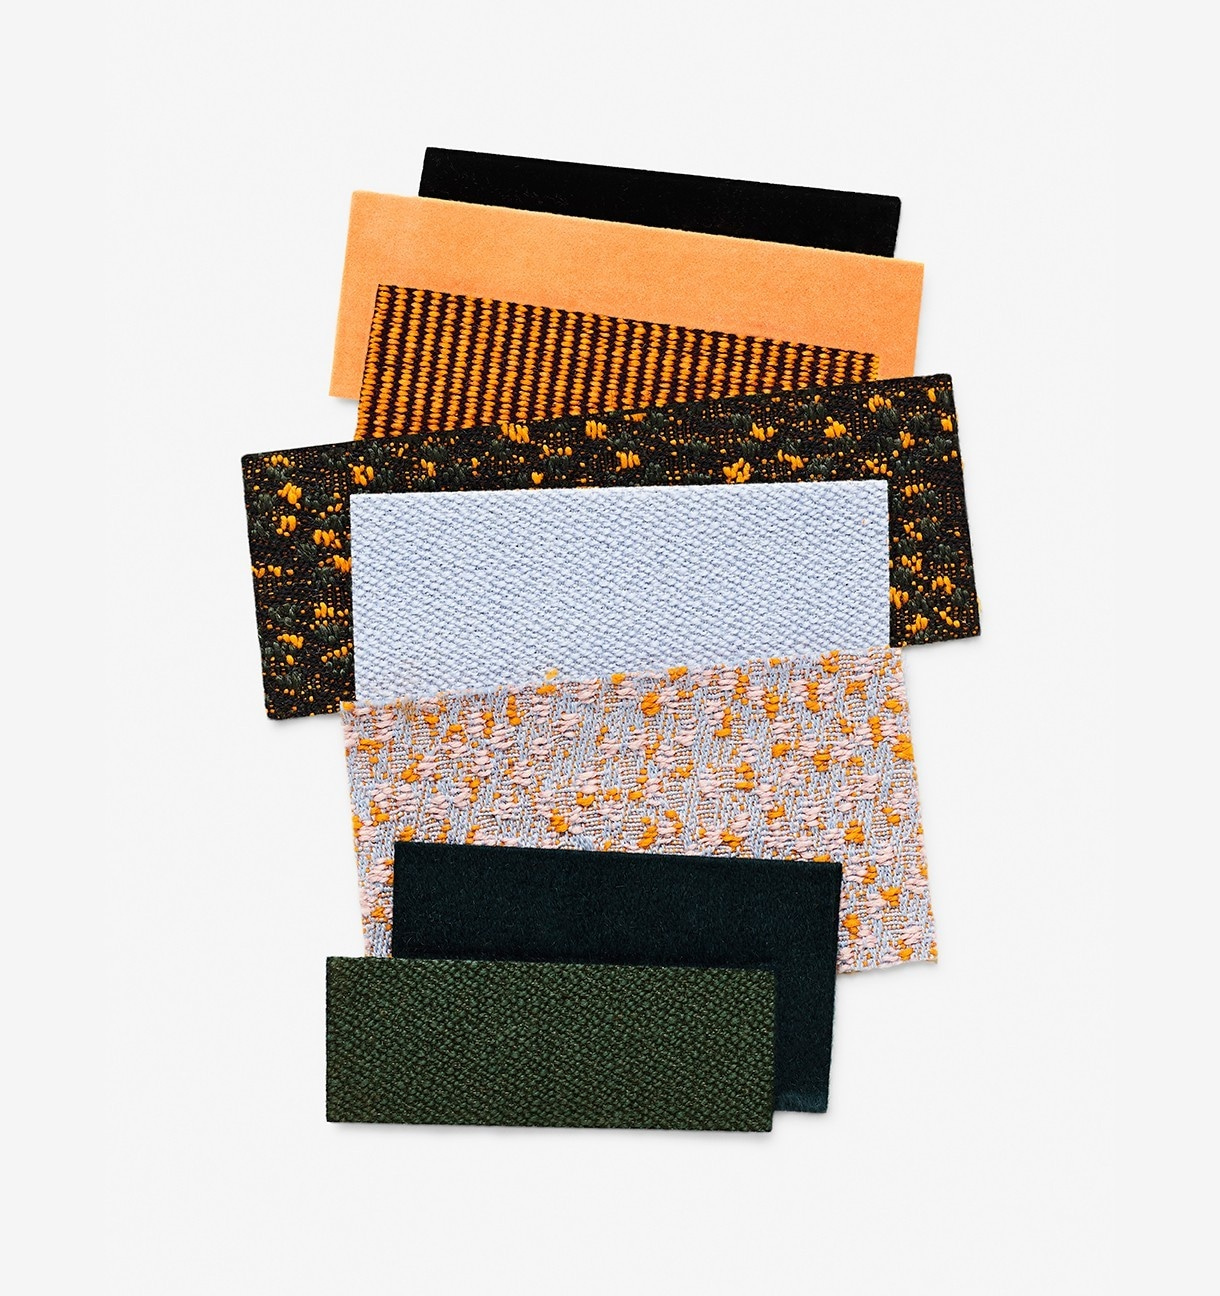 2017-kvadrat-raf-mixed186619-high-small-2.jpg